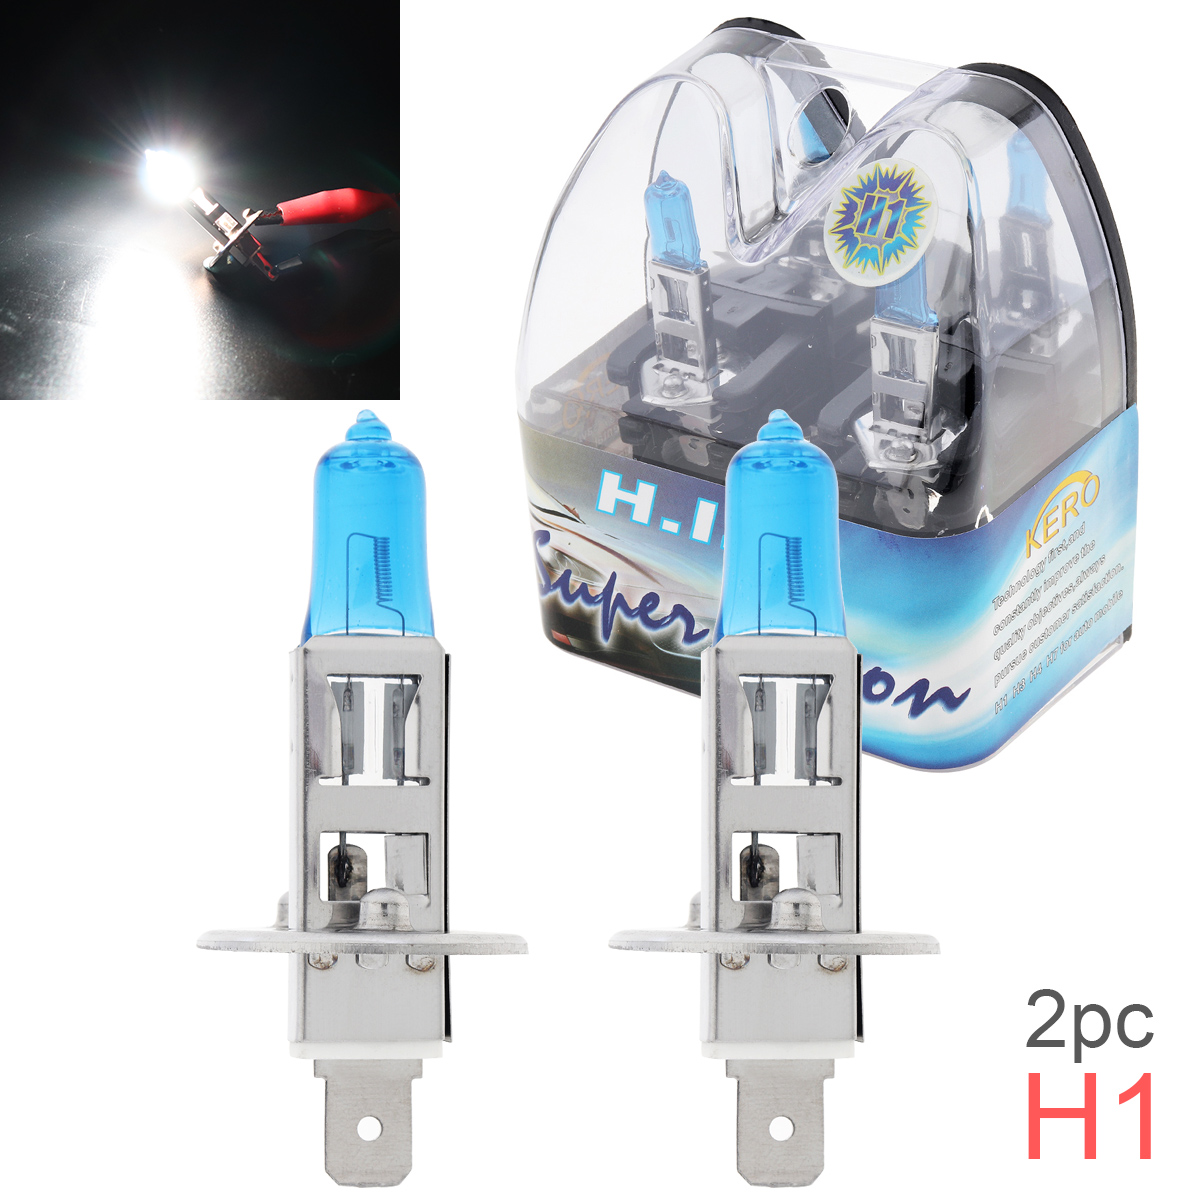 2 Pcs DC 12V H1 55W 6000K White Light Super Bright Car Single Xenon Halogen Lamp Auto Front Headlight Fog Bulb External Lights